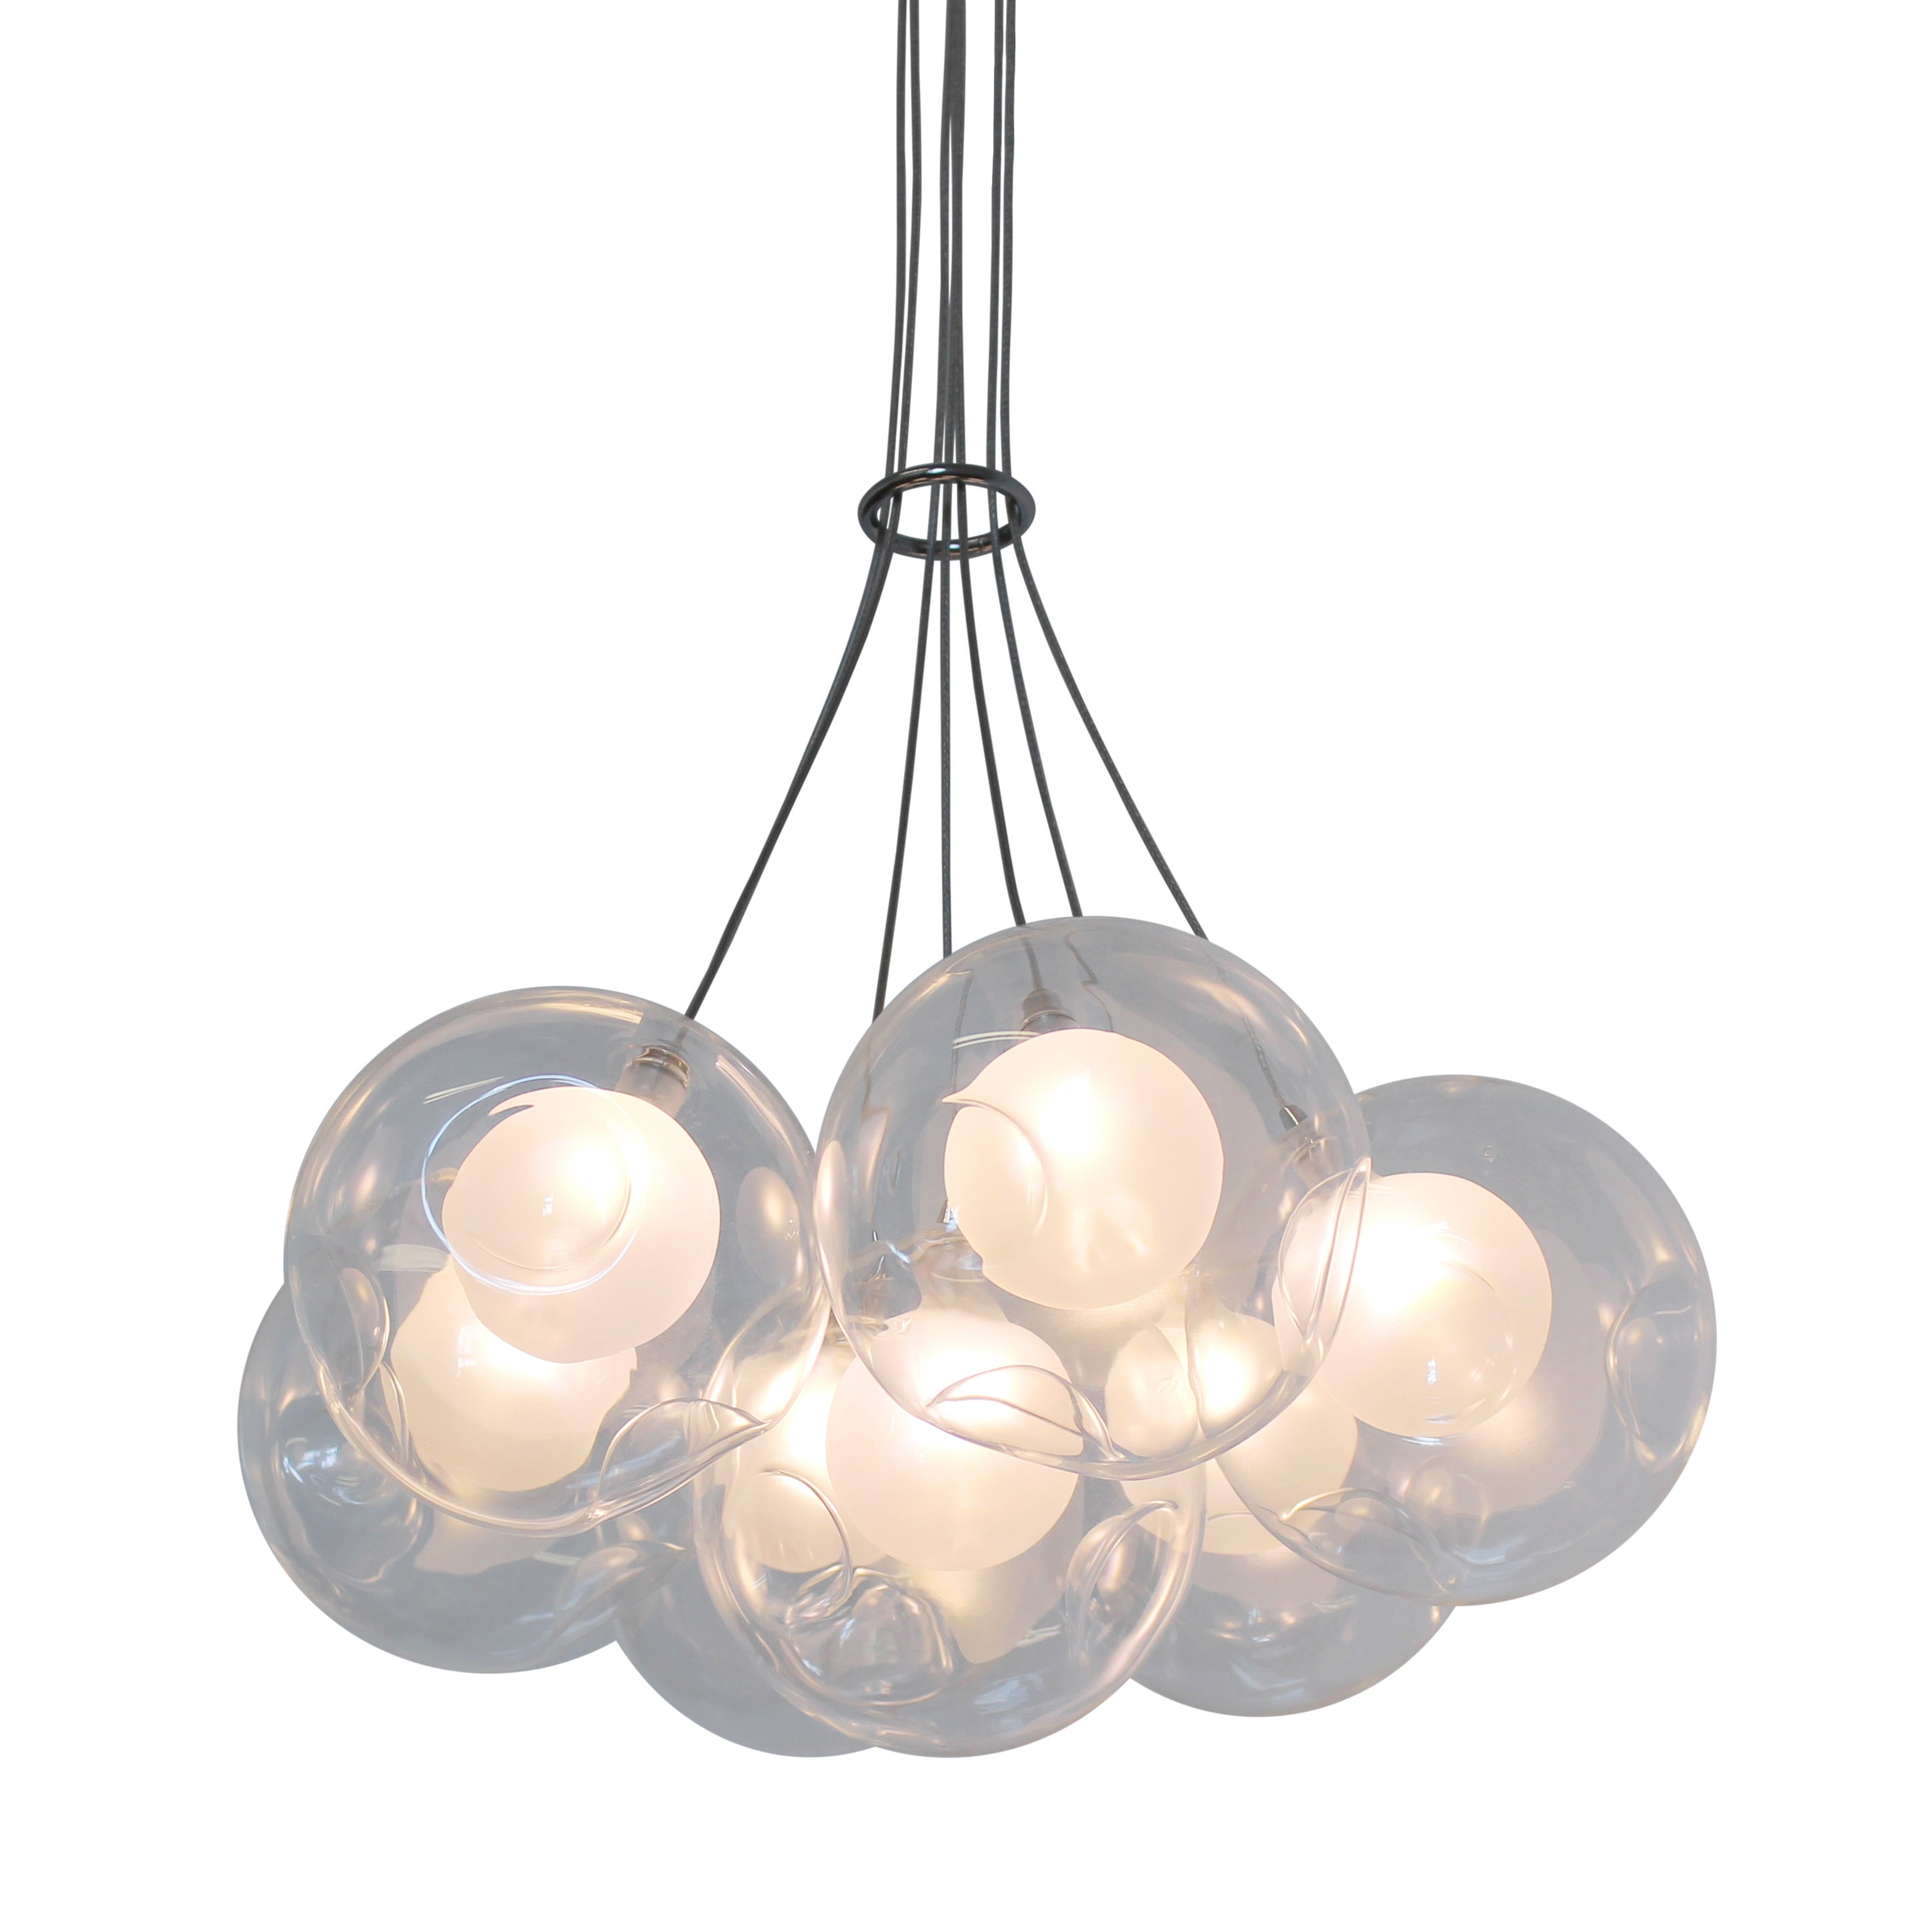 Ara 7 Light Glass Sphere Rectangular LED Chandelier Free